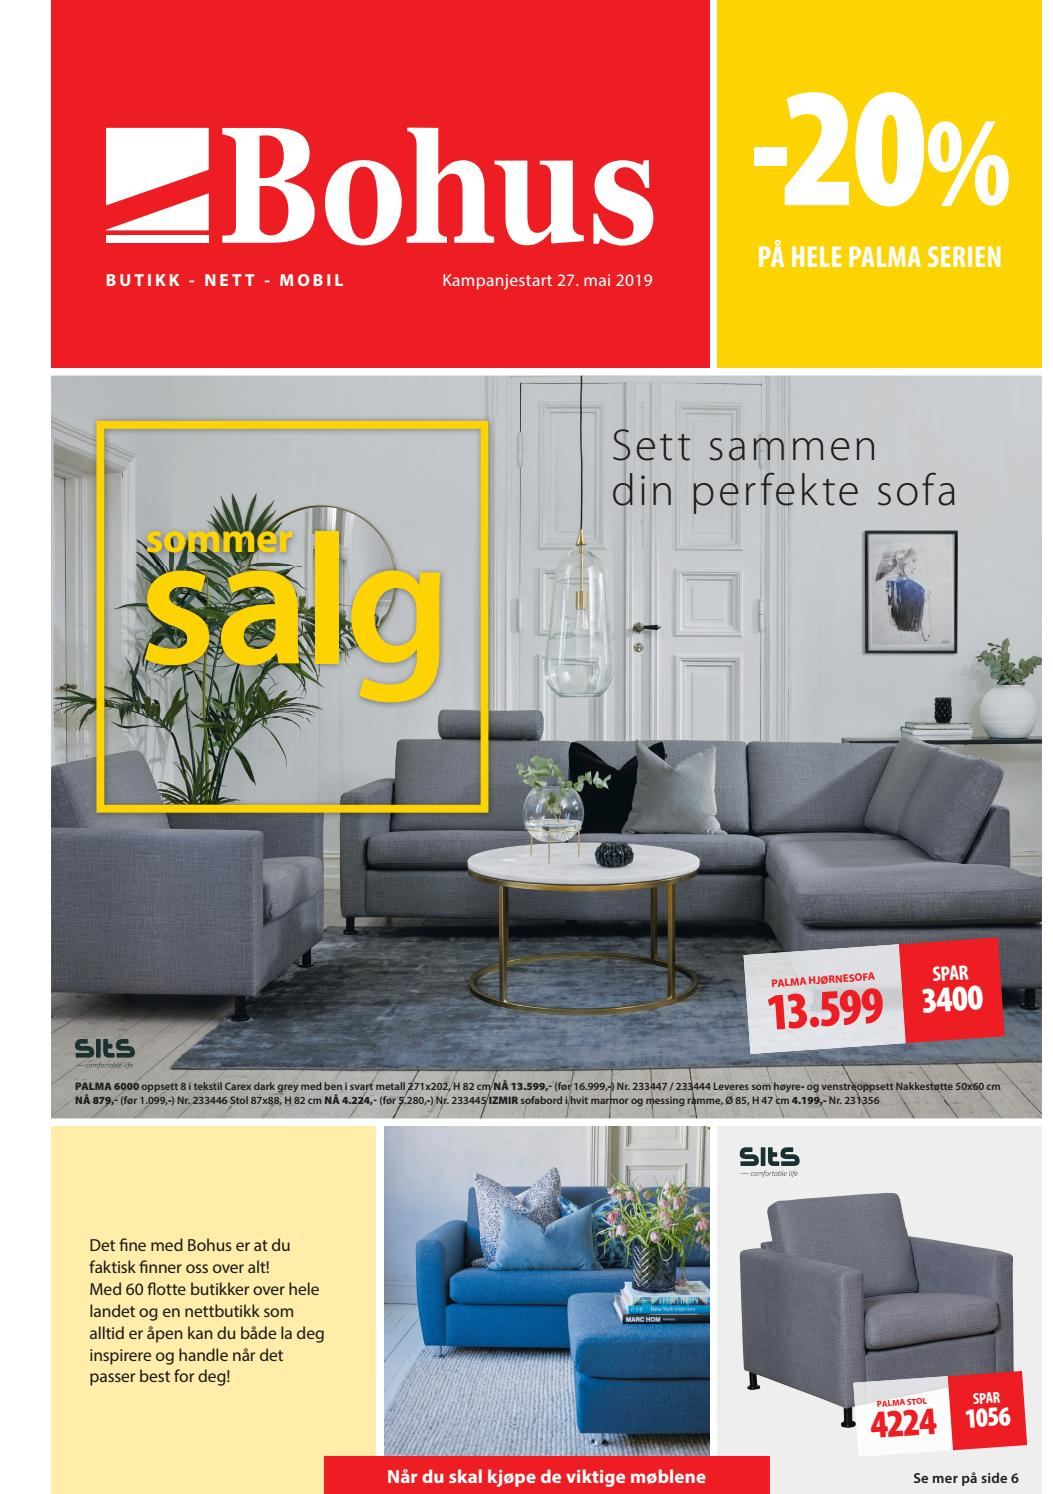 Picture of: Bohus Dm 27 05 By Adresseavisen Issuu